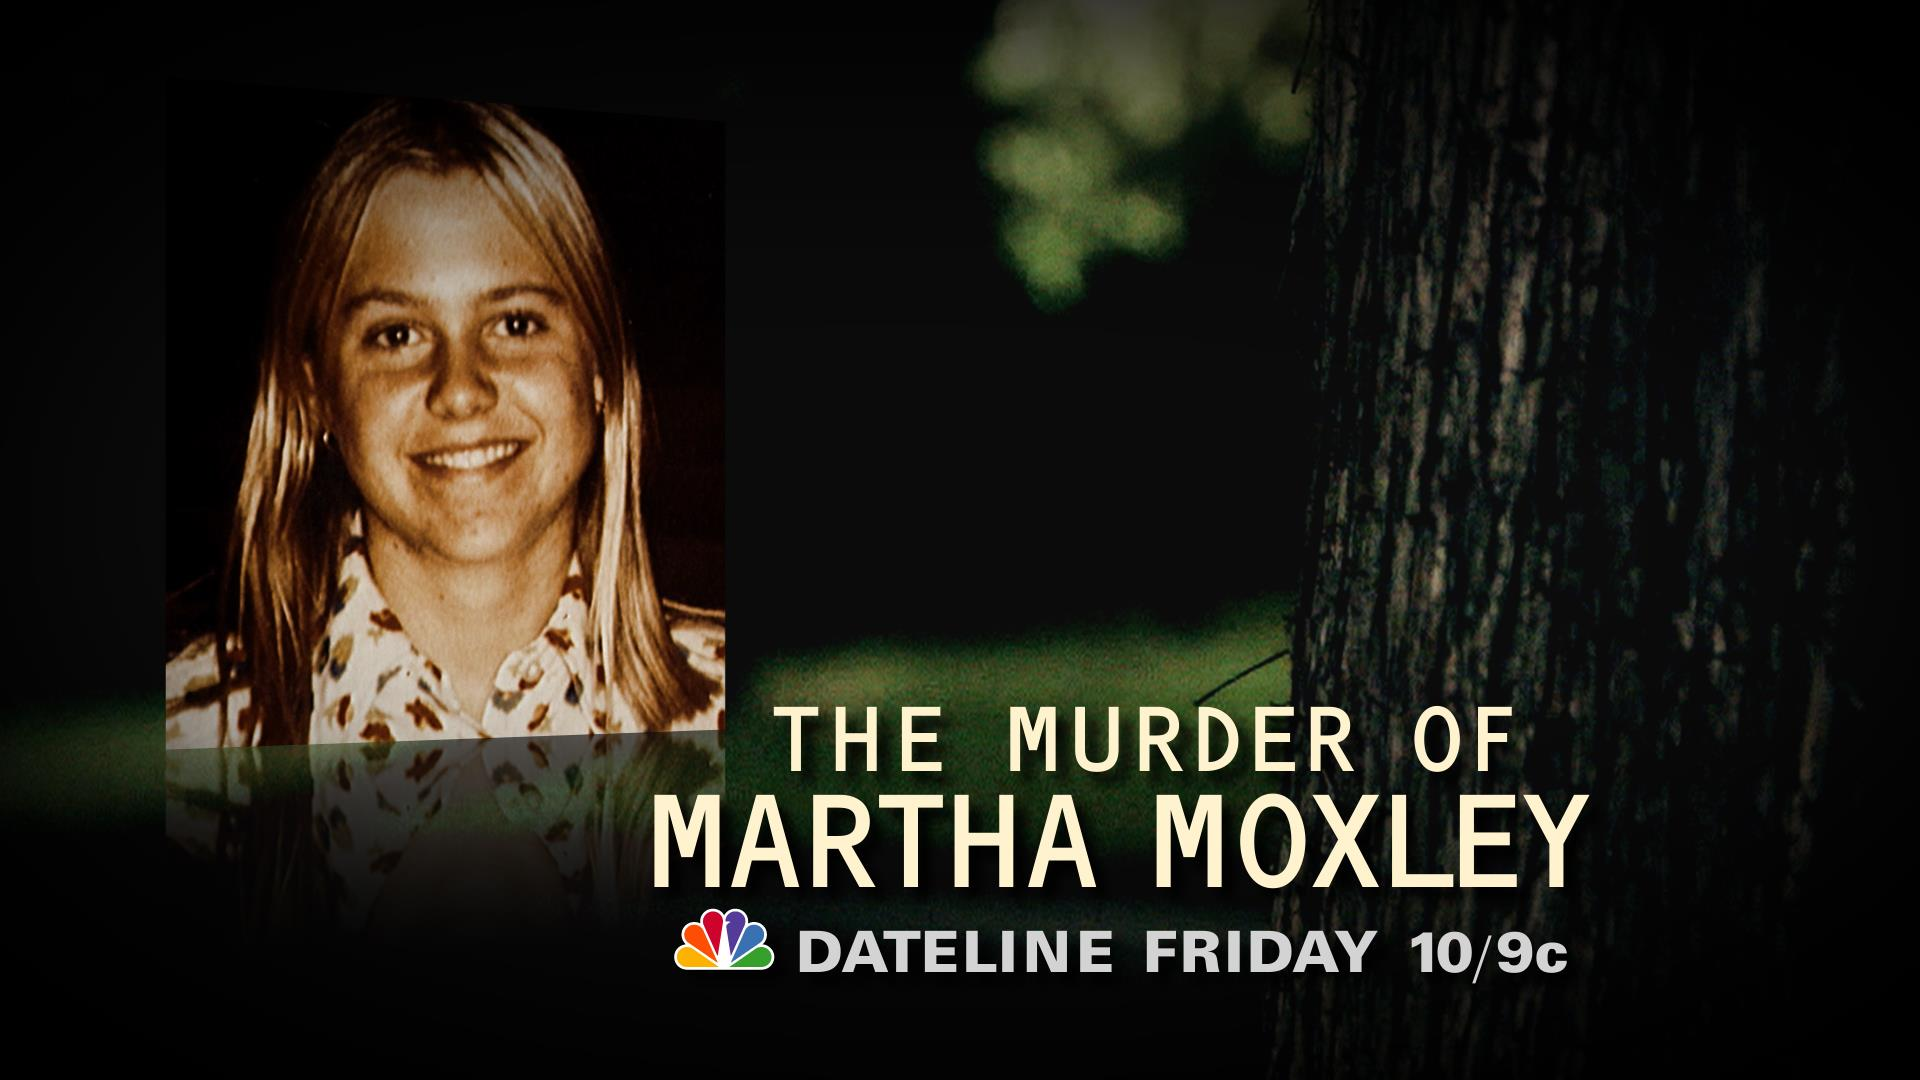 Preview The Murder Of Martha Moxley